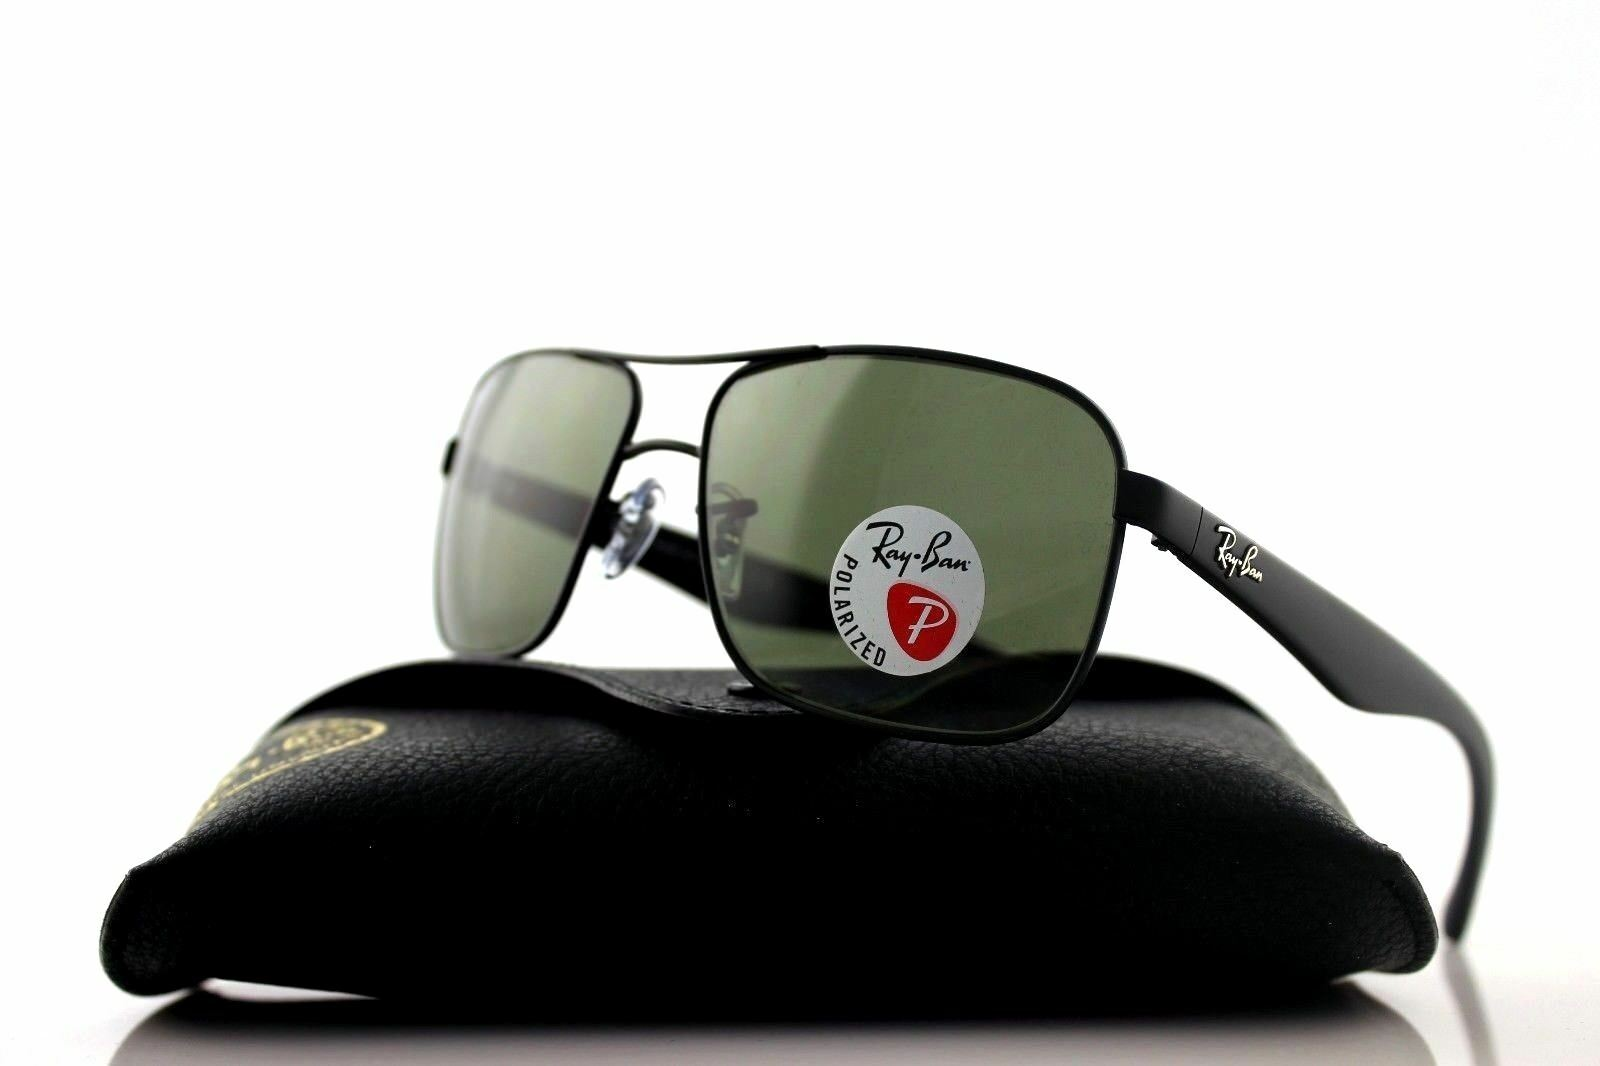 ca2c273fb0 Ray-Ban Rb3516 006 9a 59mm Matte Black Frame green Polarized ...